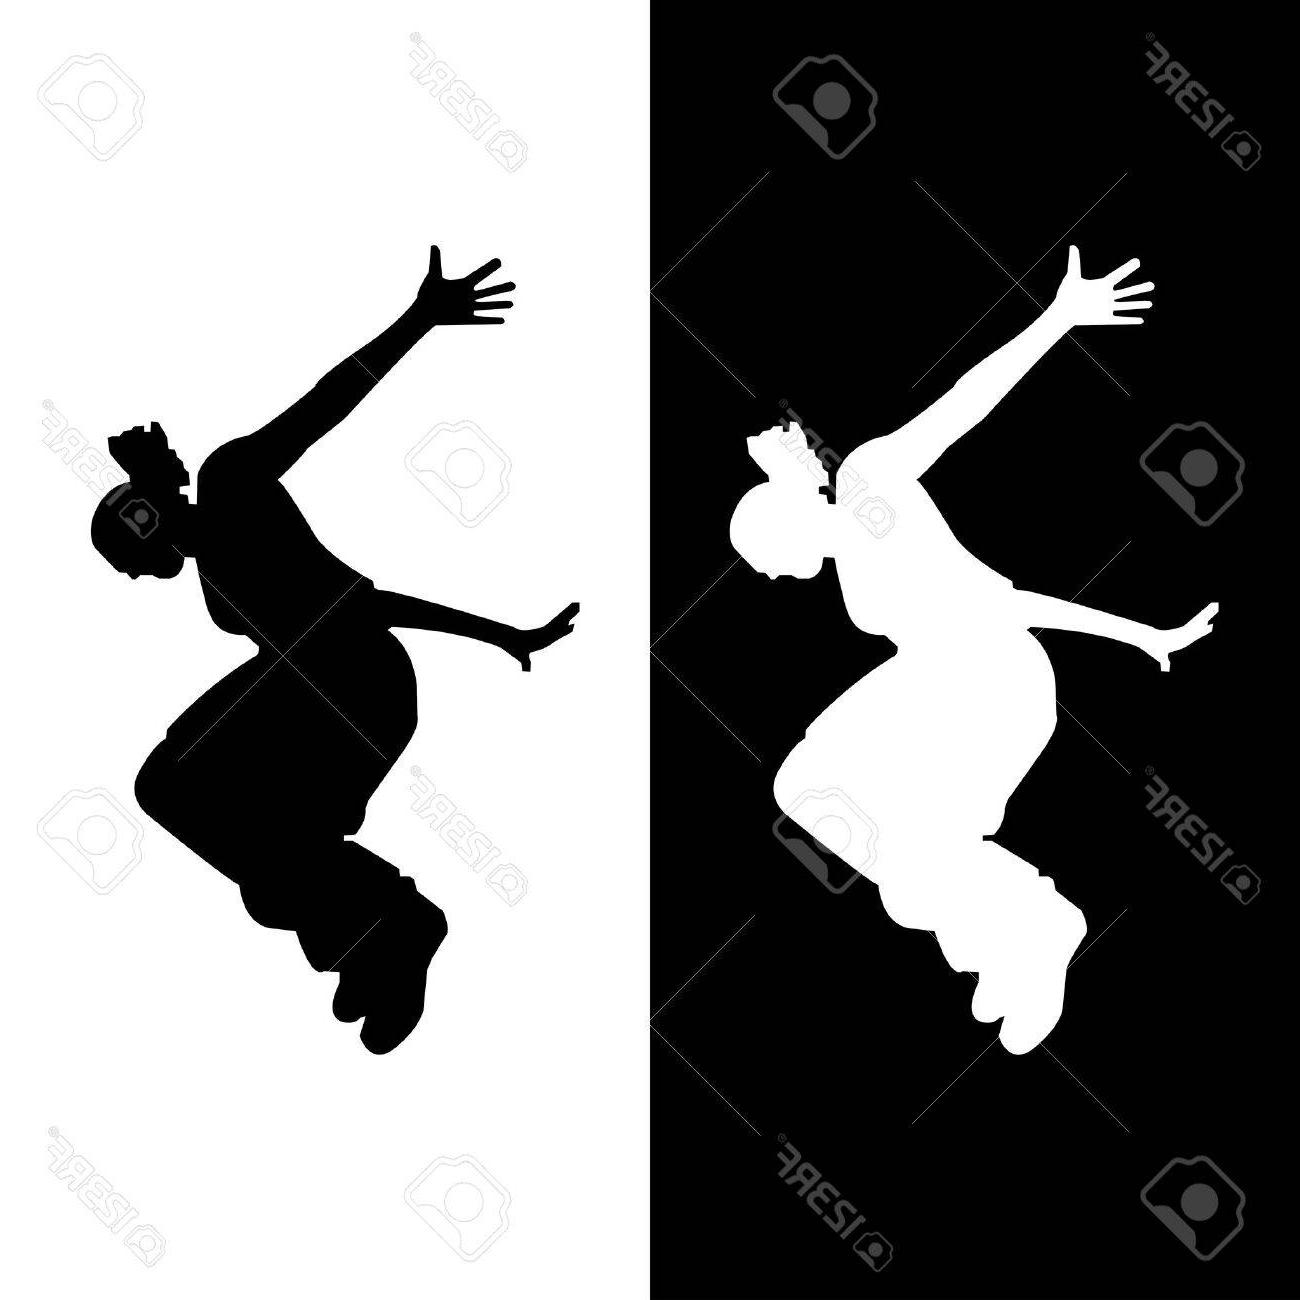 1300x1300 Unique Vector Silhouette Of Woman Who Does Parkour In City